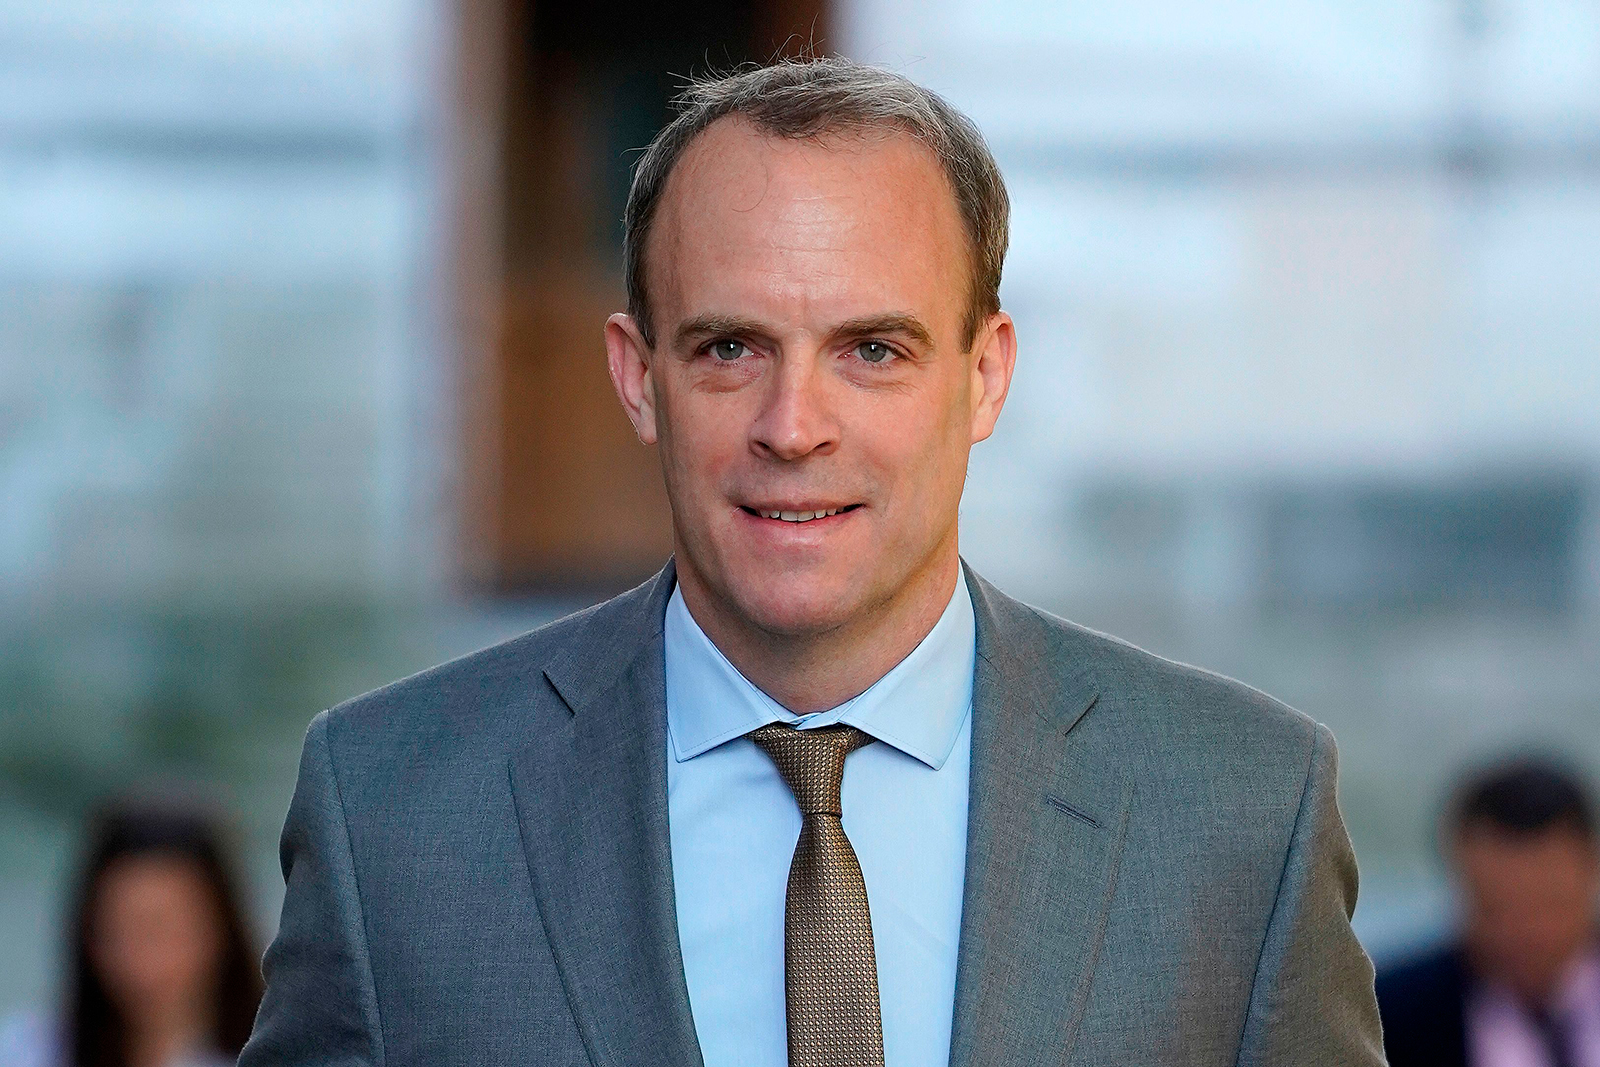 Britain's Foreign Secretary Dominic Raab leaves the Foreign Office in London on April 20.